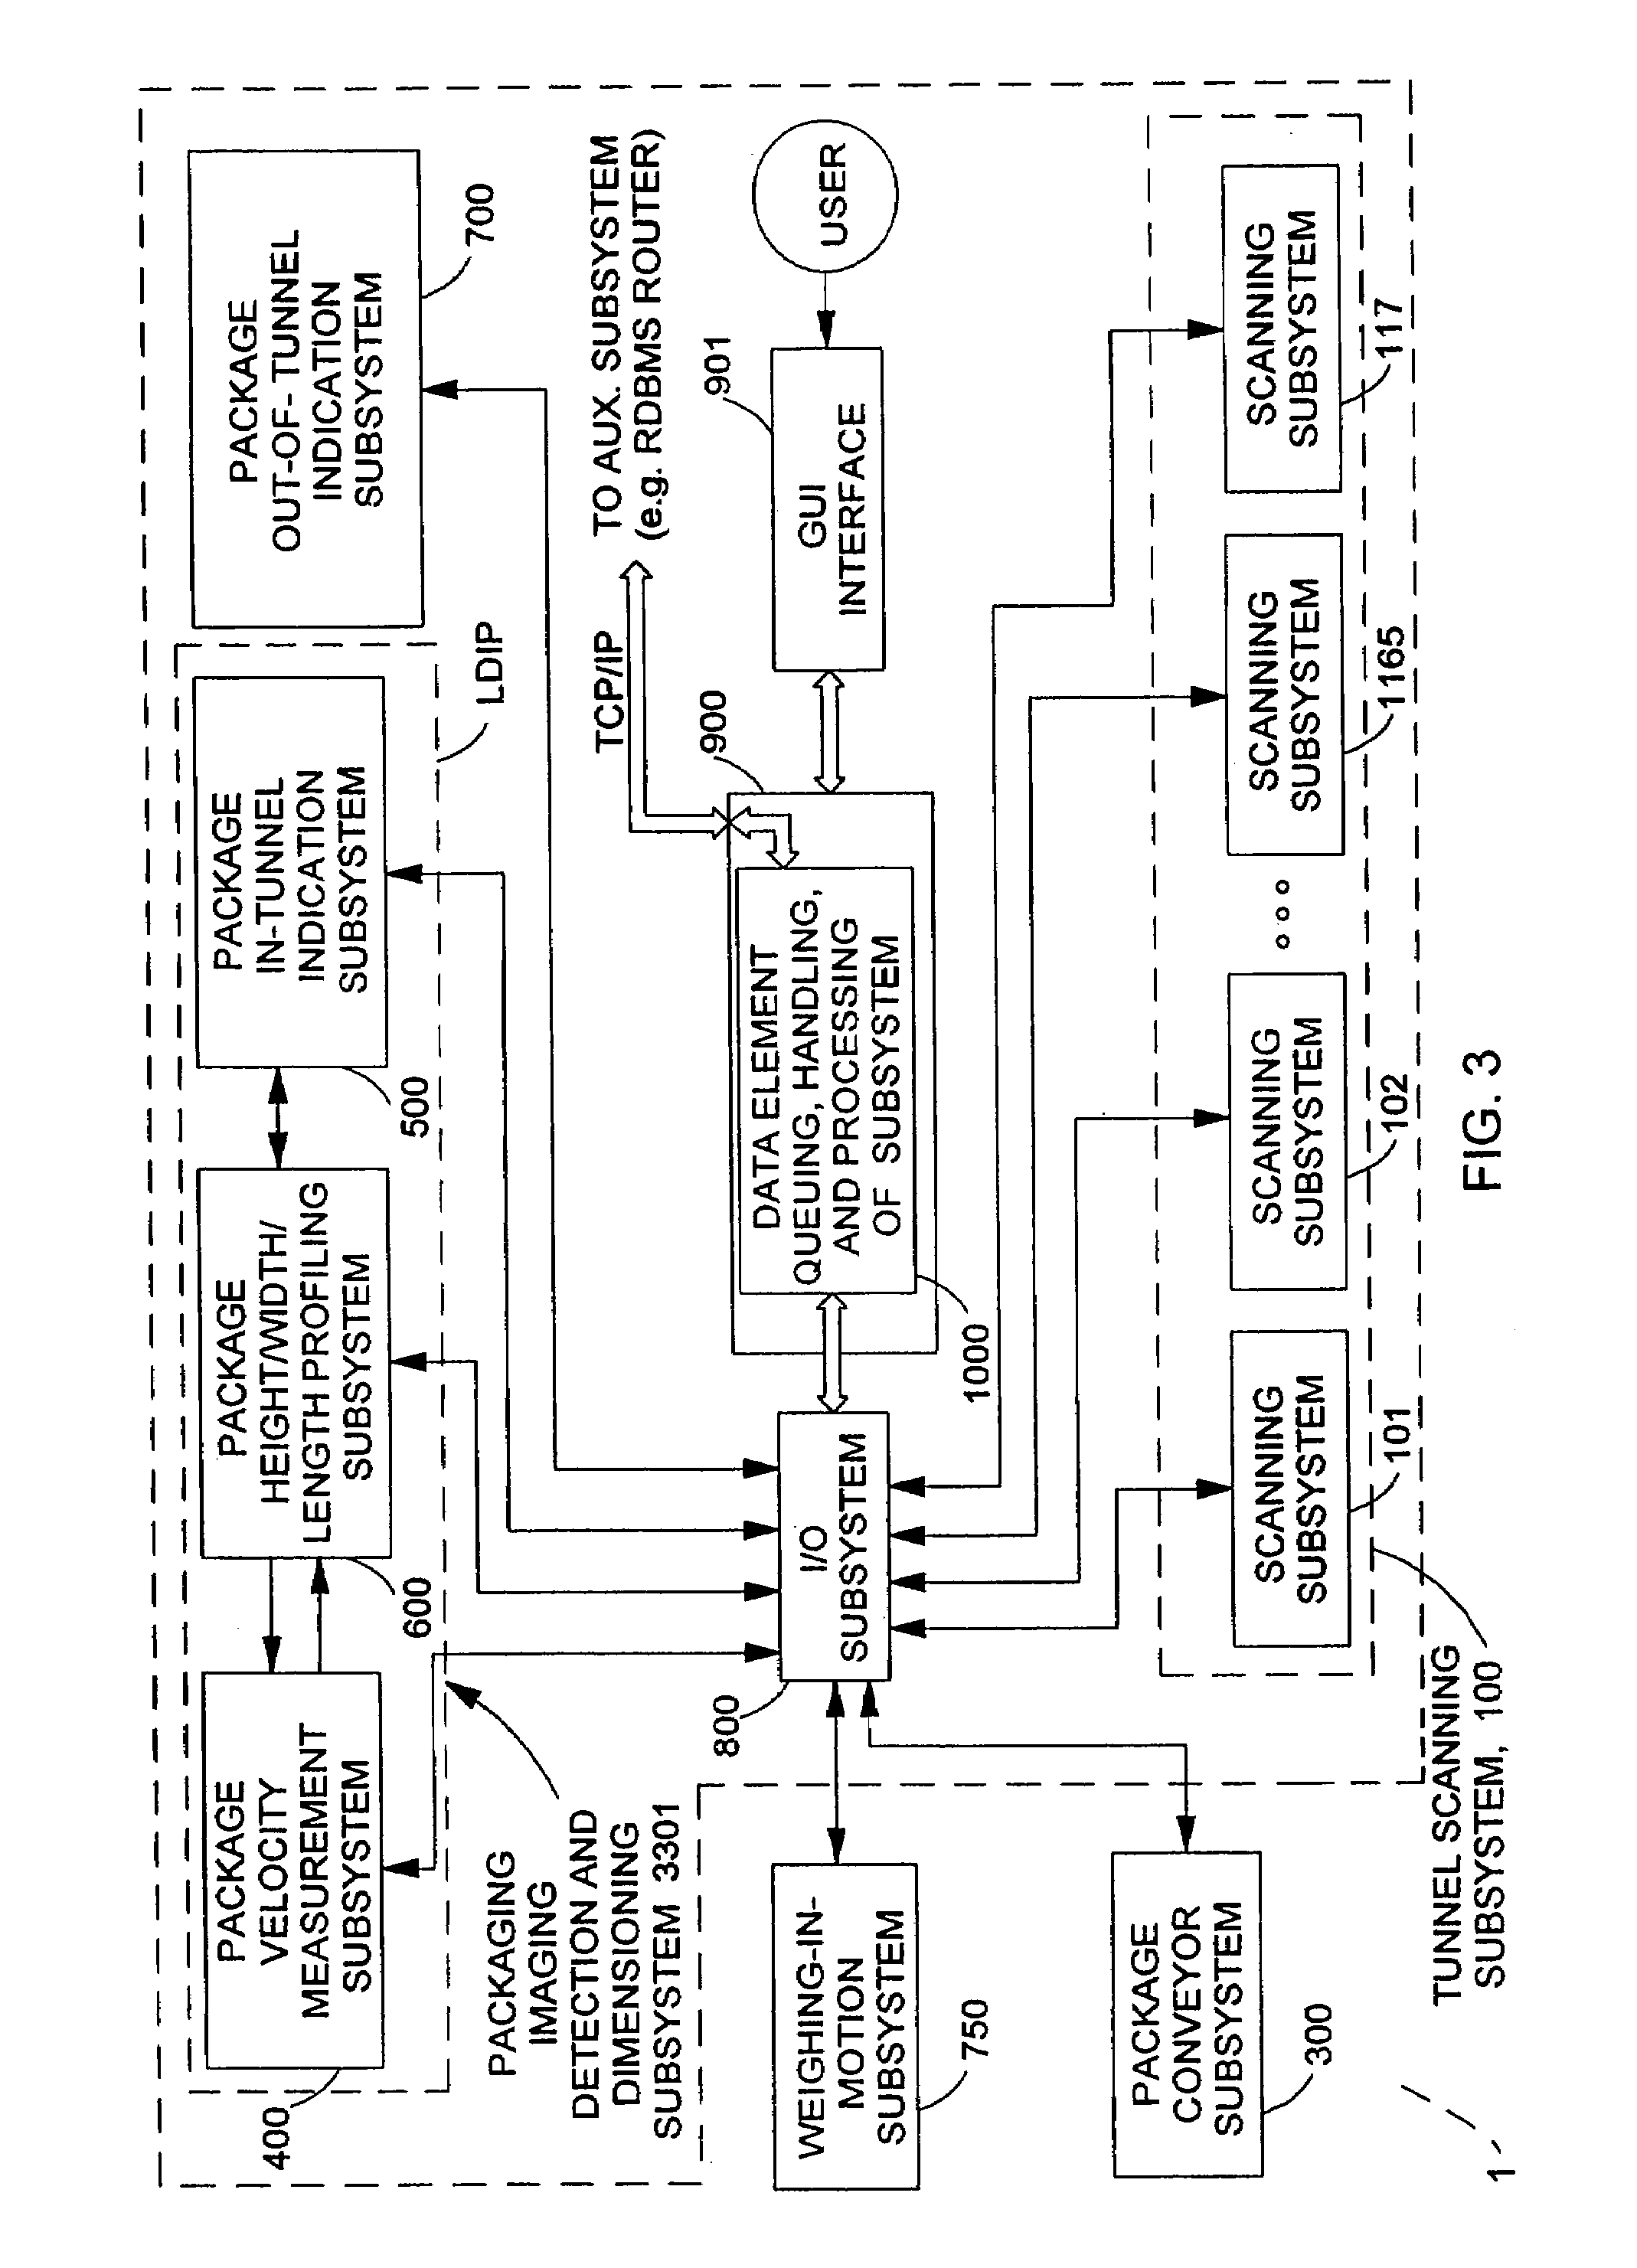 Patent Us 7527205 B2 Glossary Of Electronic And Engineering Terms Gray Code Circuit